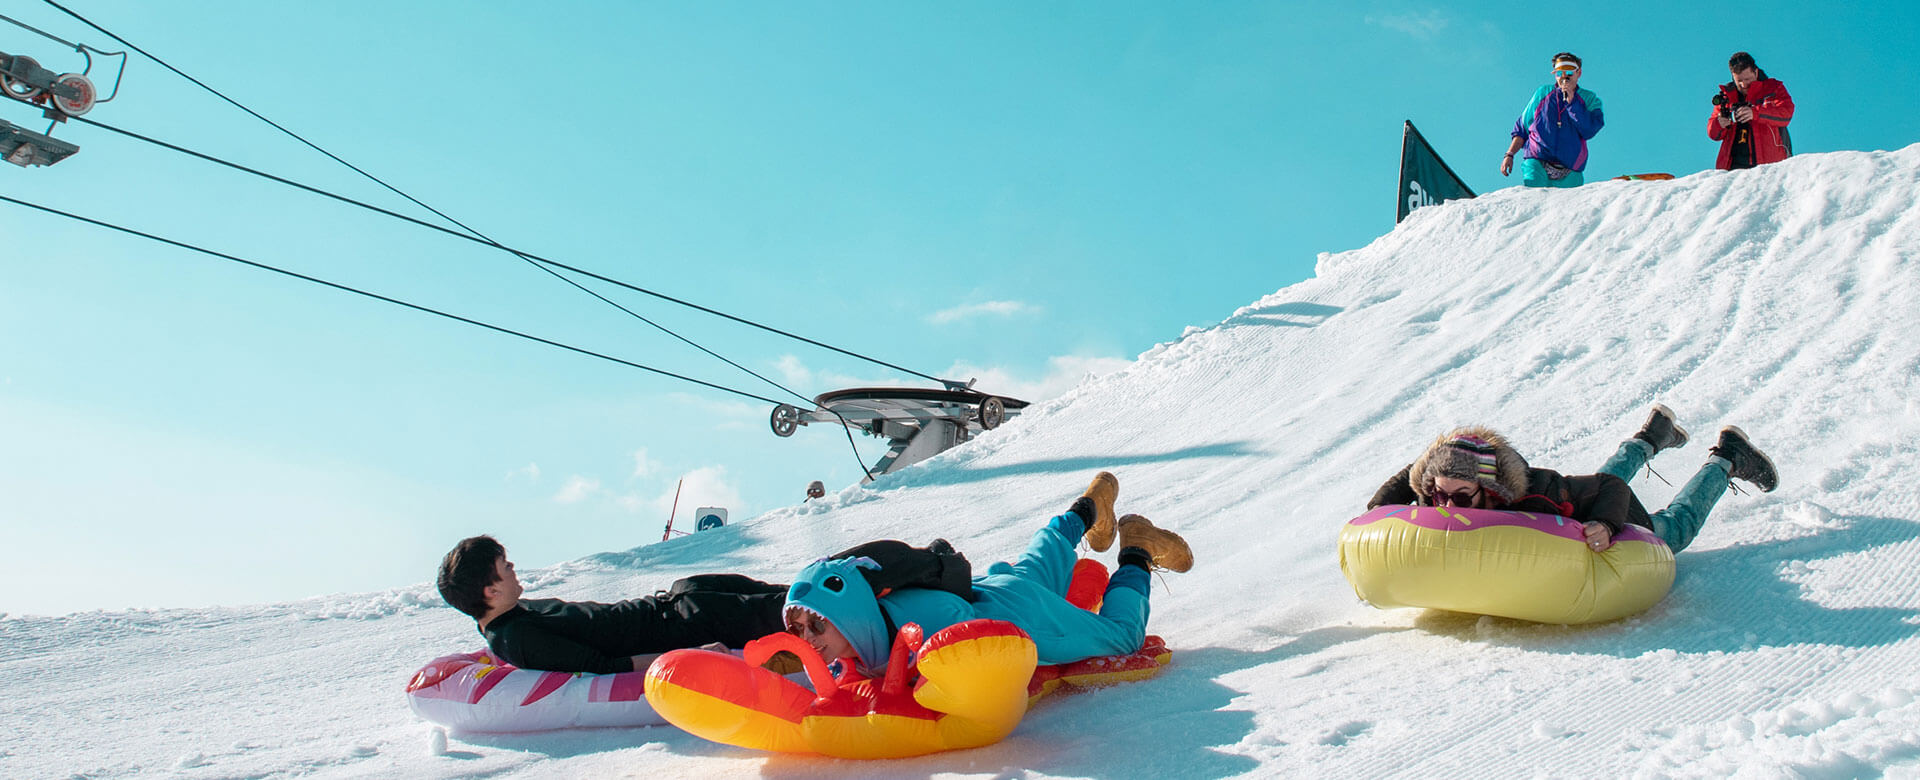 People racing downhill on inflatables in the shape of doughnuts and lobsters in the snow at Snowboxx festival